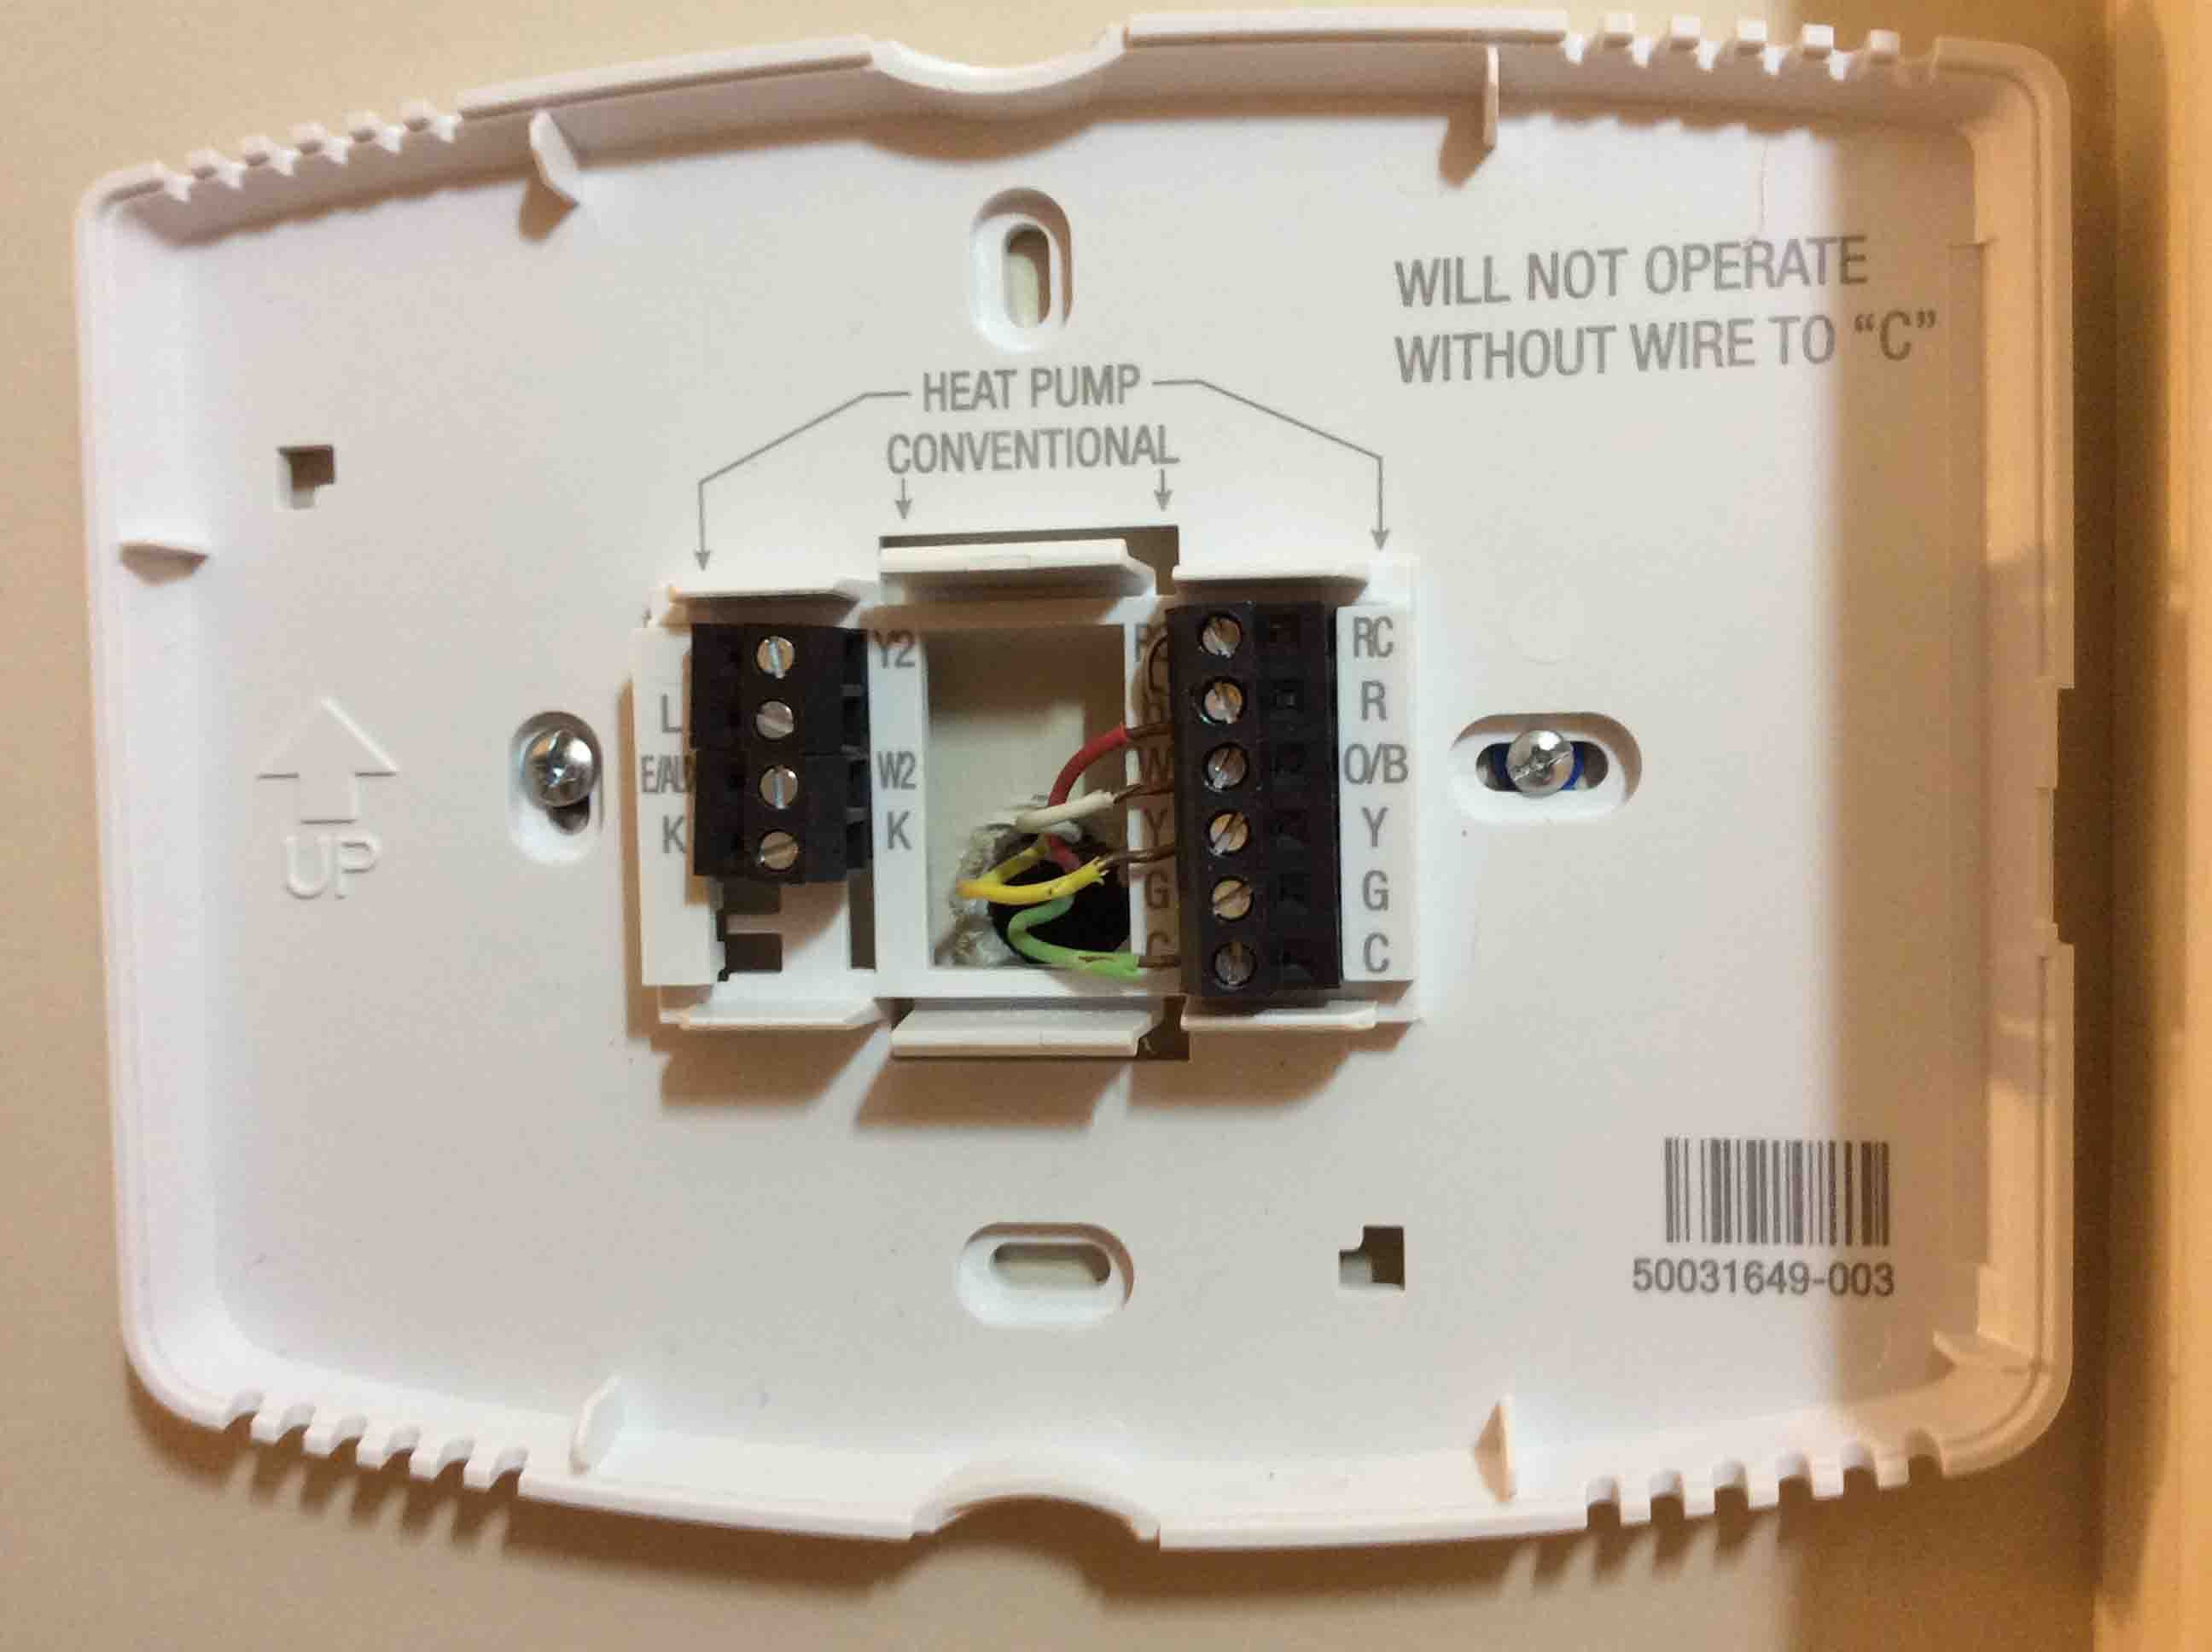 honeywell thermostat wiring diagram 4 wire tom s tek stop rh tomstek us installing honeywell thermostat wifi thermostat wiring honeywell t5